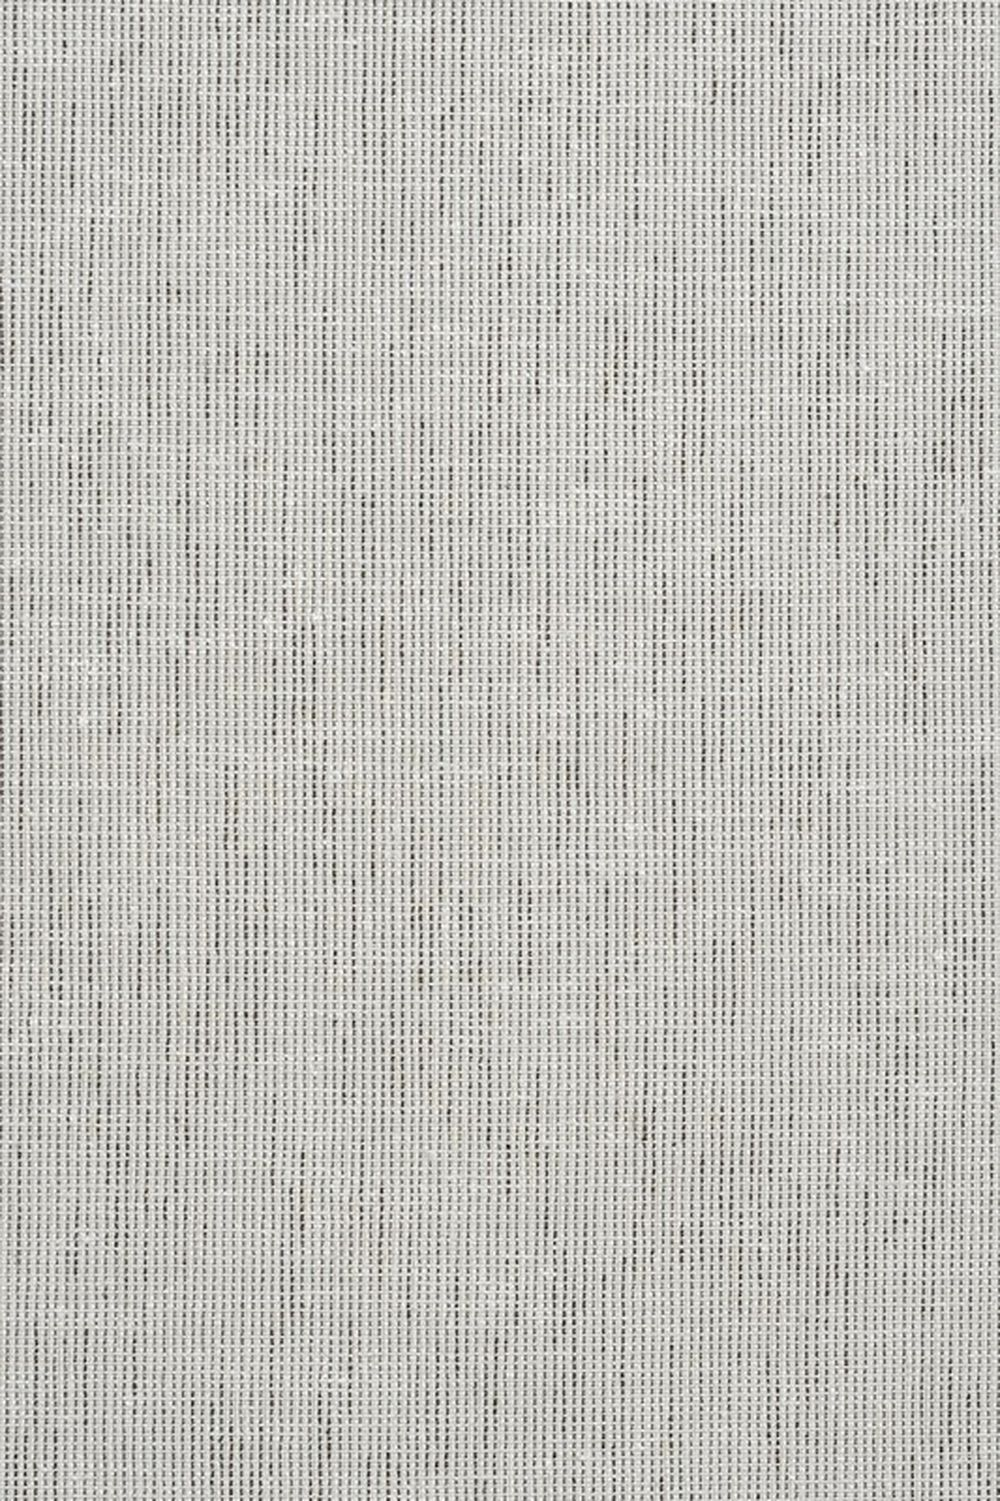 Photo of the fabric Shoji Silver Birch swatch by Mokum. Use for Drapery Sheer. Style of Plain, Sheer, Texture